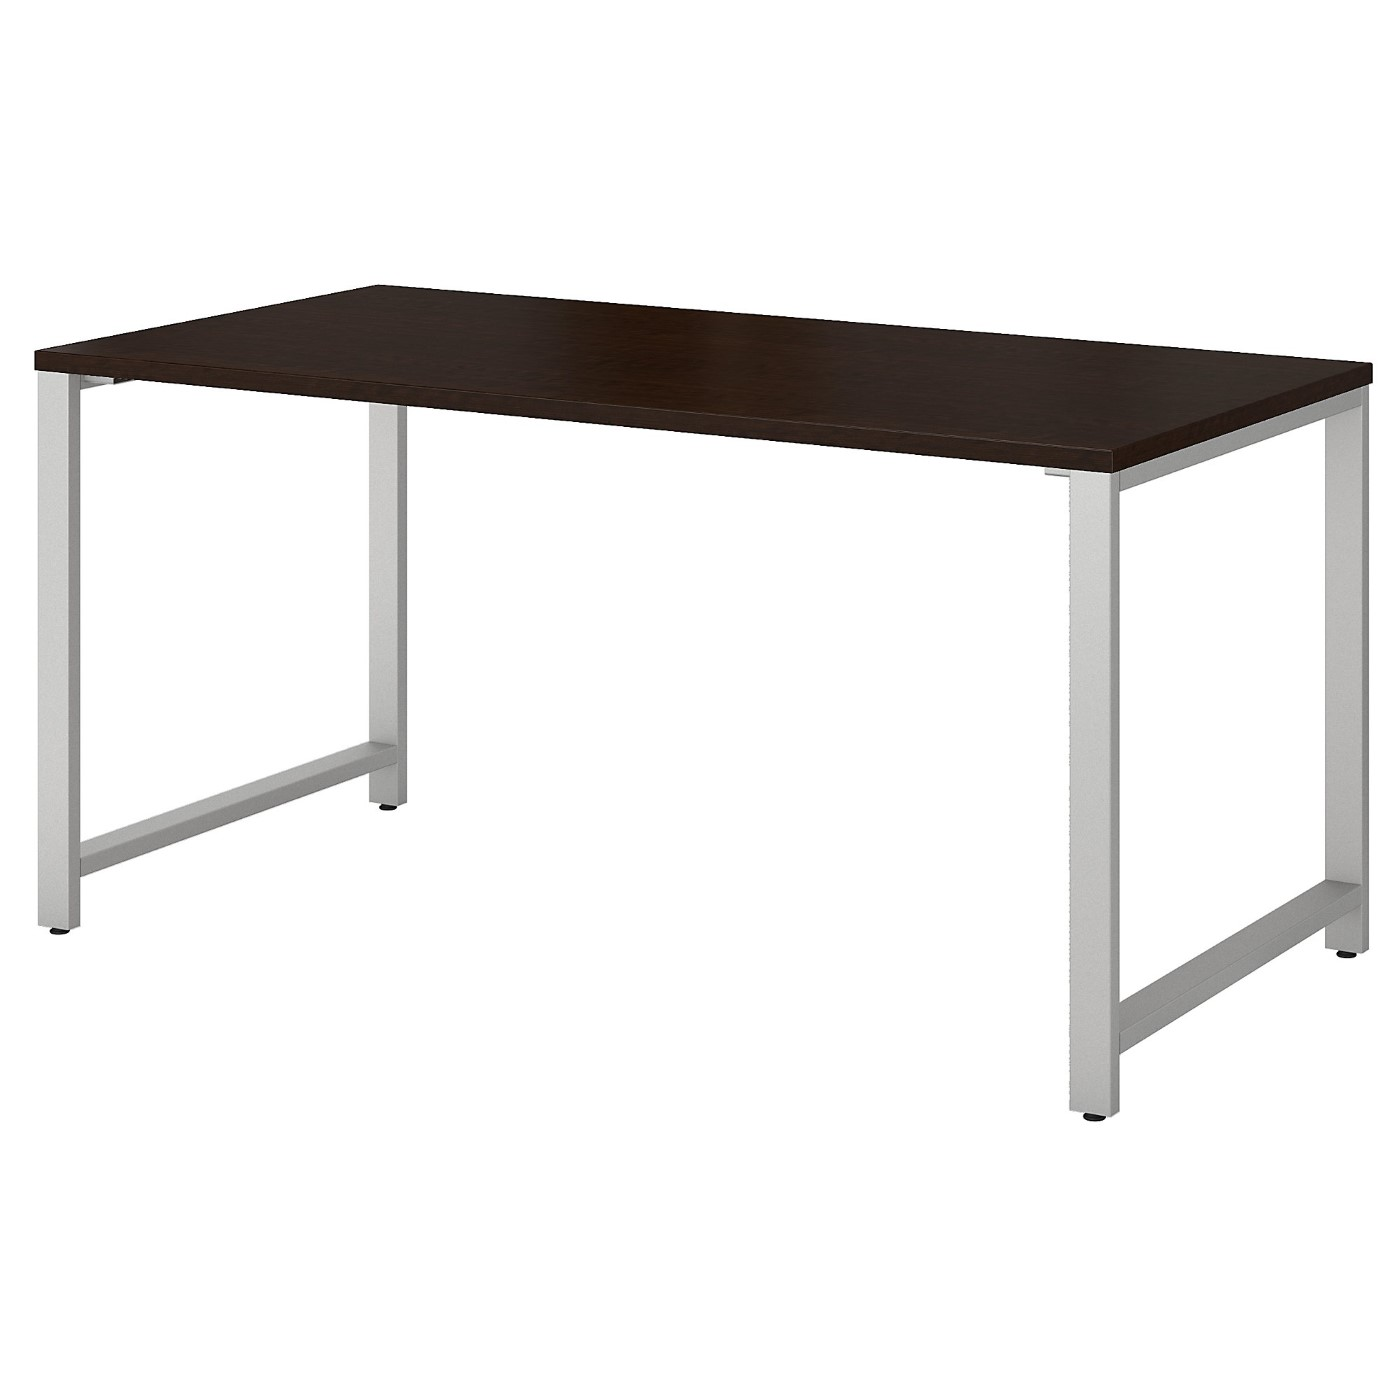 BUSH BUSINESS FURNITURE 400 SERIES 60W X 30D TABLE DESK WITH METAL LEGS. FREE SHIPPING